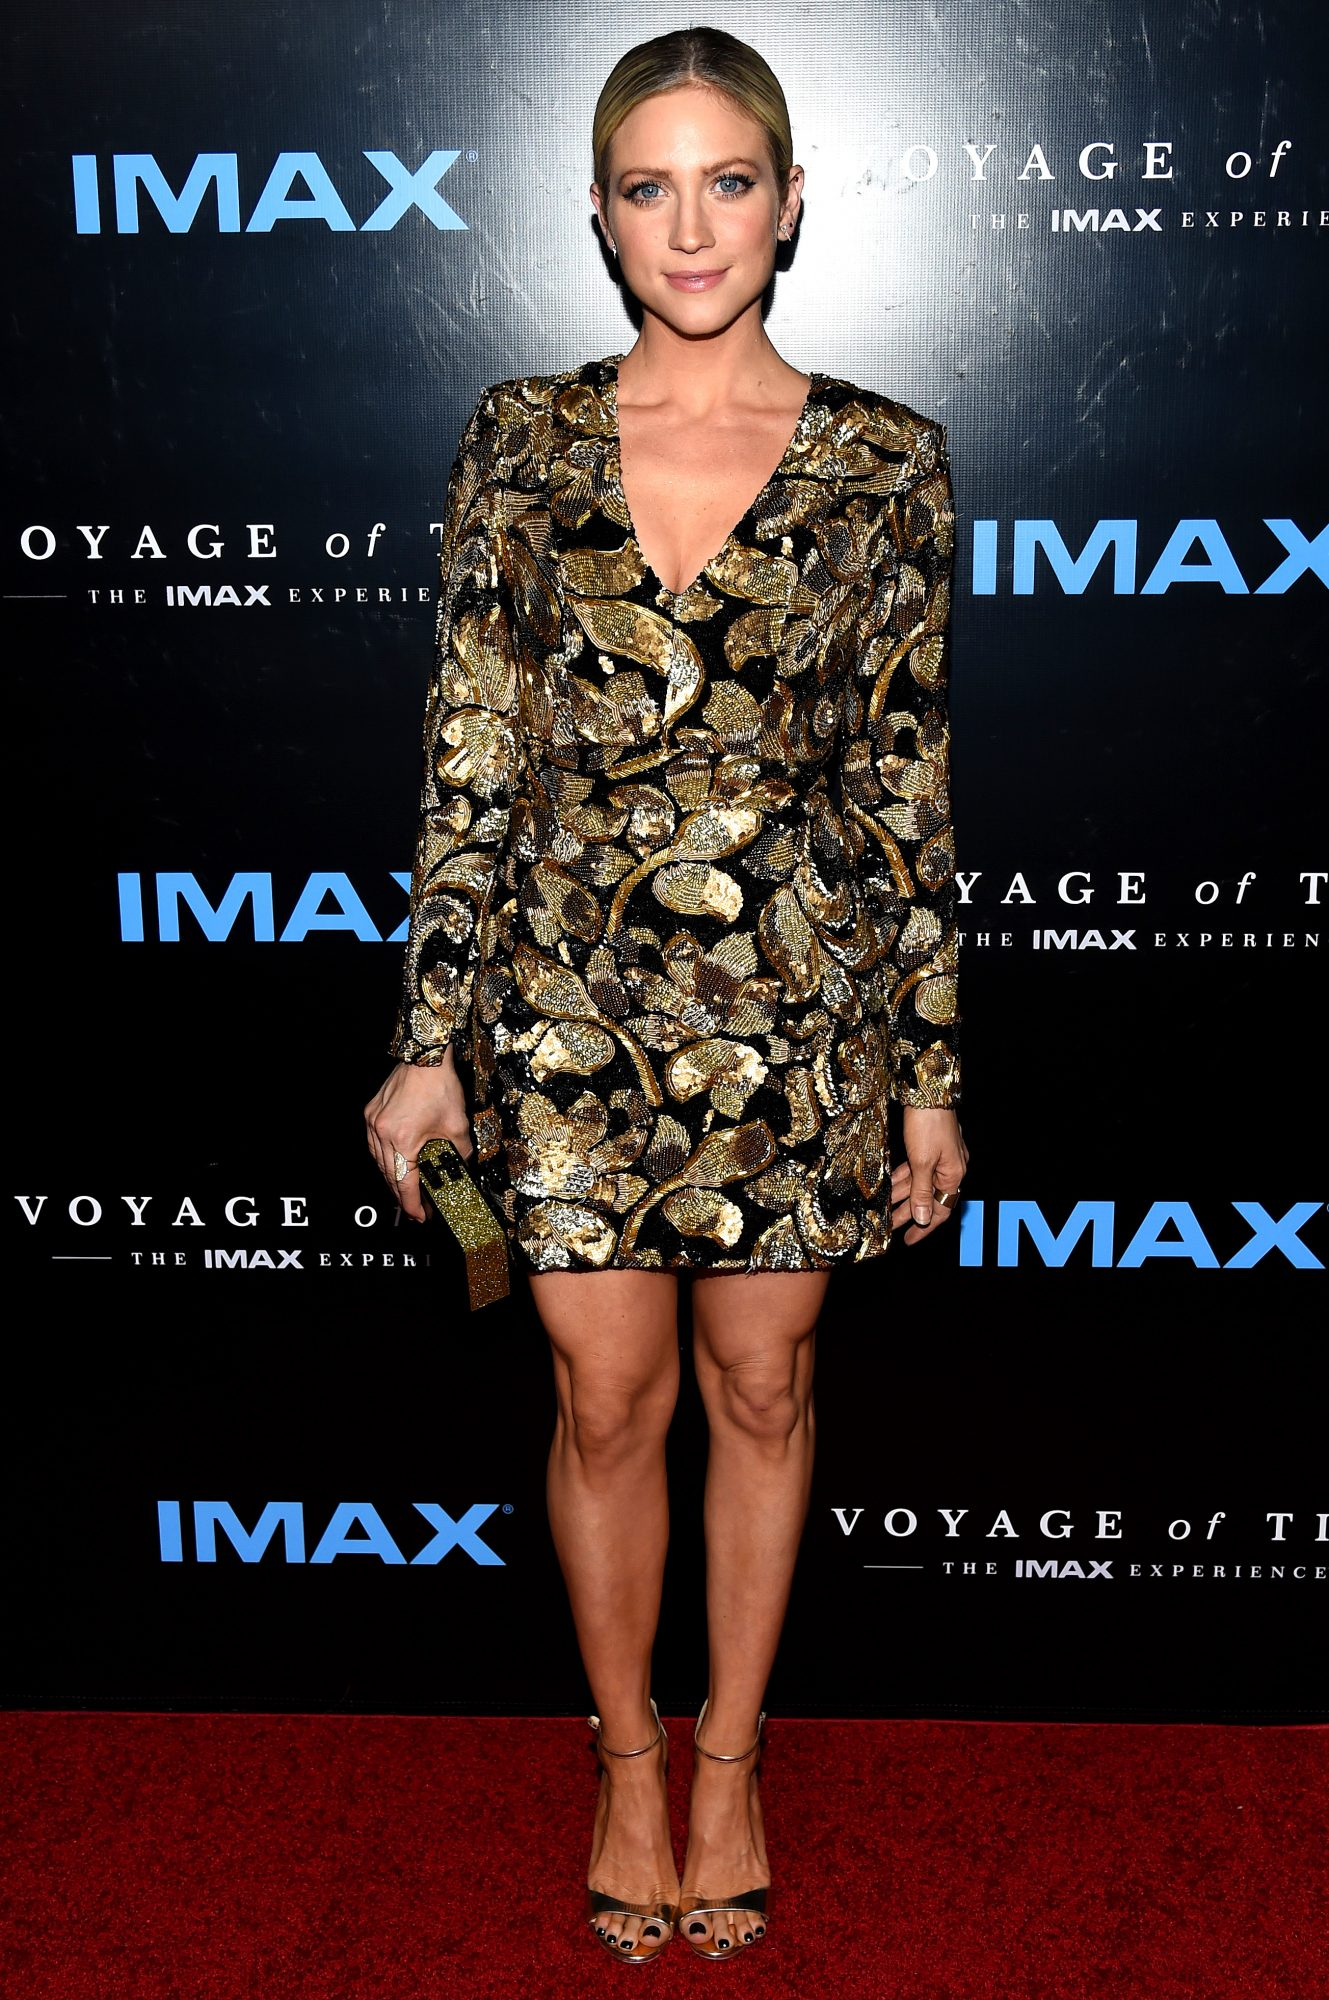 """Premiere Of IMAX's """"Voyage Of Time: The IMAX Experience"""" - Arrivals"""